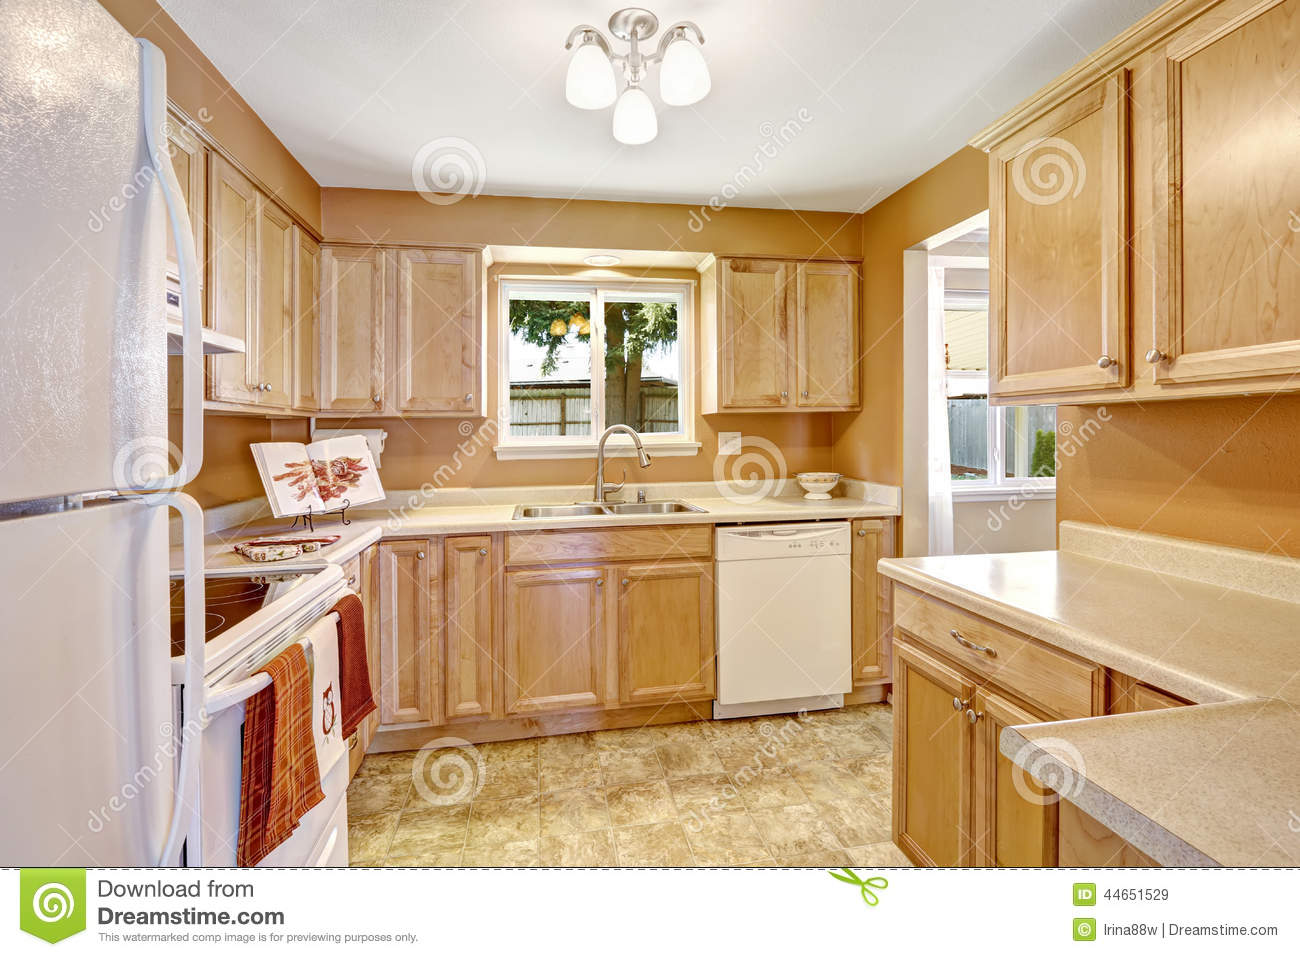 White Kitchen Appliances With Wood Cabinets new kitchen cabinets with white appliances stock photo - image